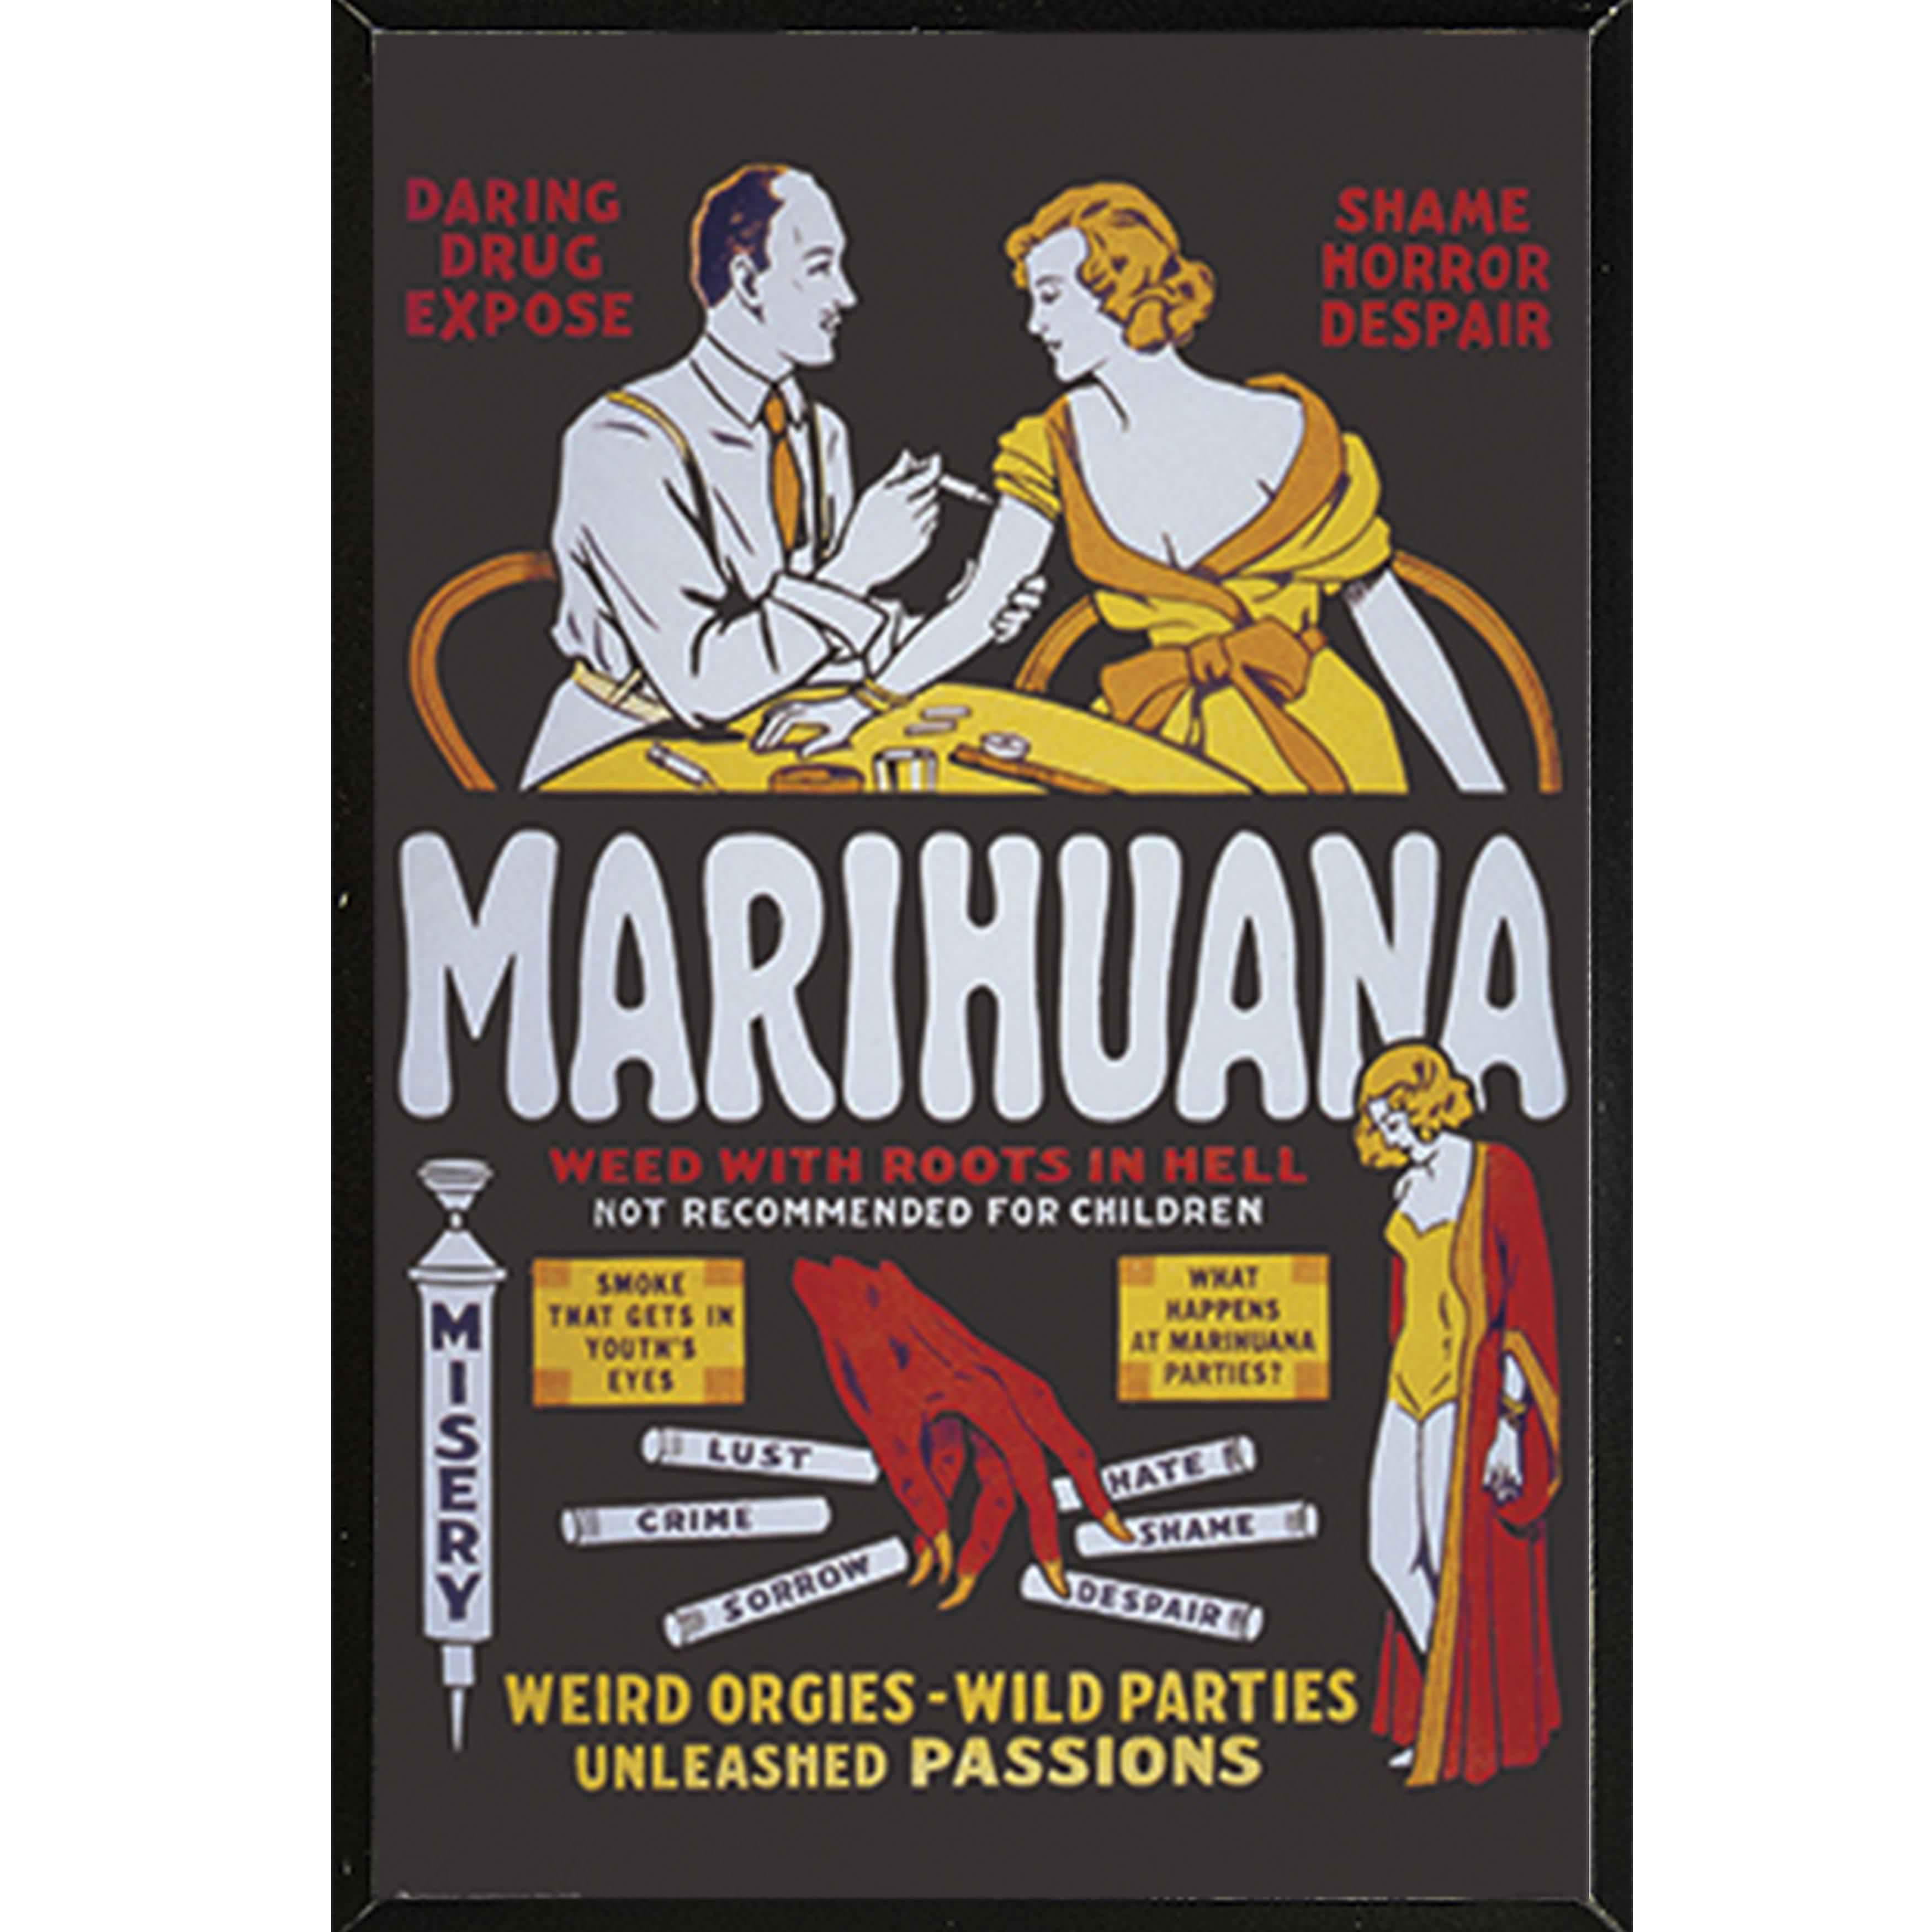 Marihuana - Weed with Roots in Hell Poster on a Black Plaque (24x36)